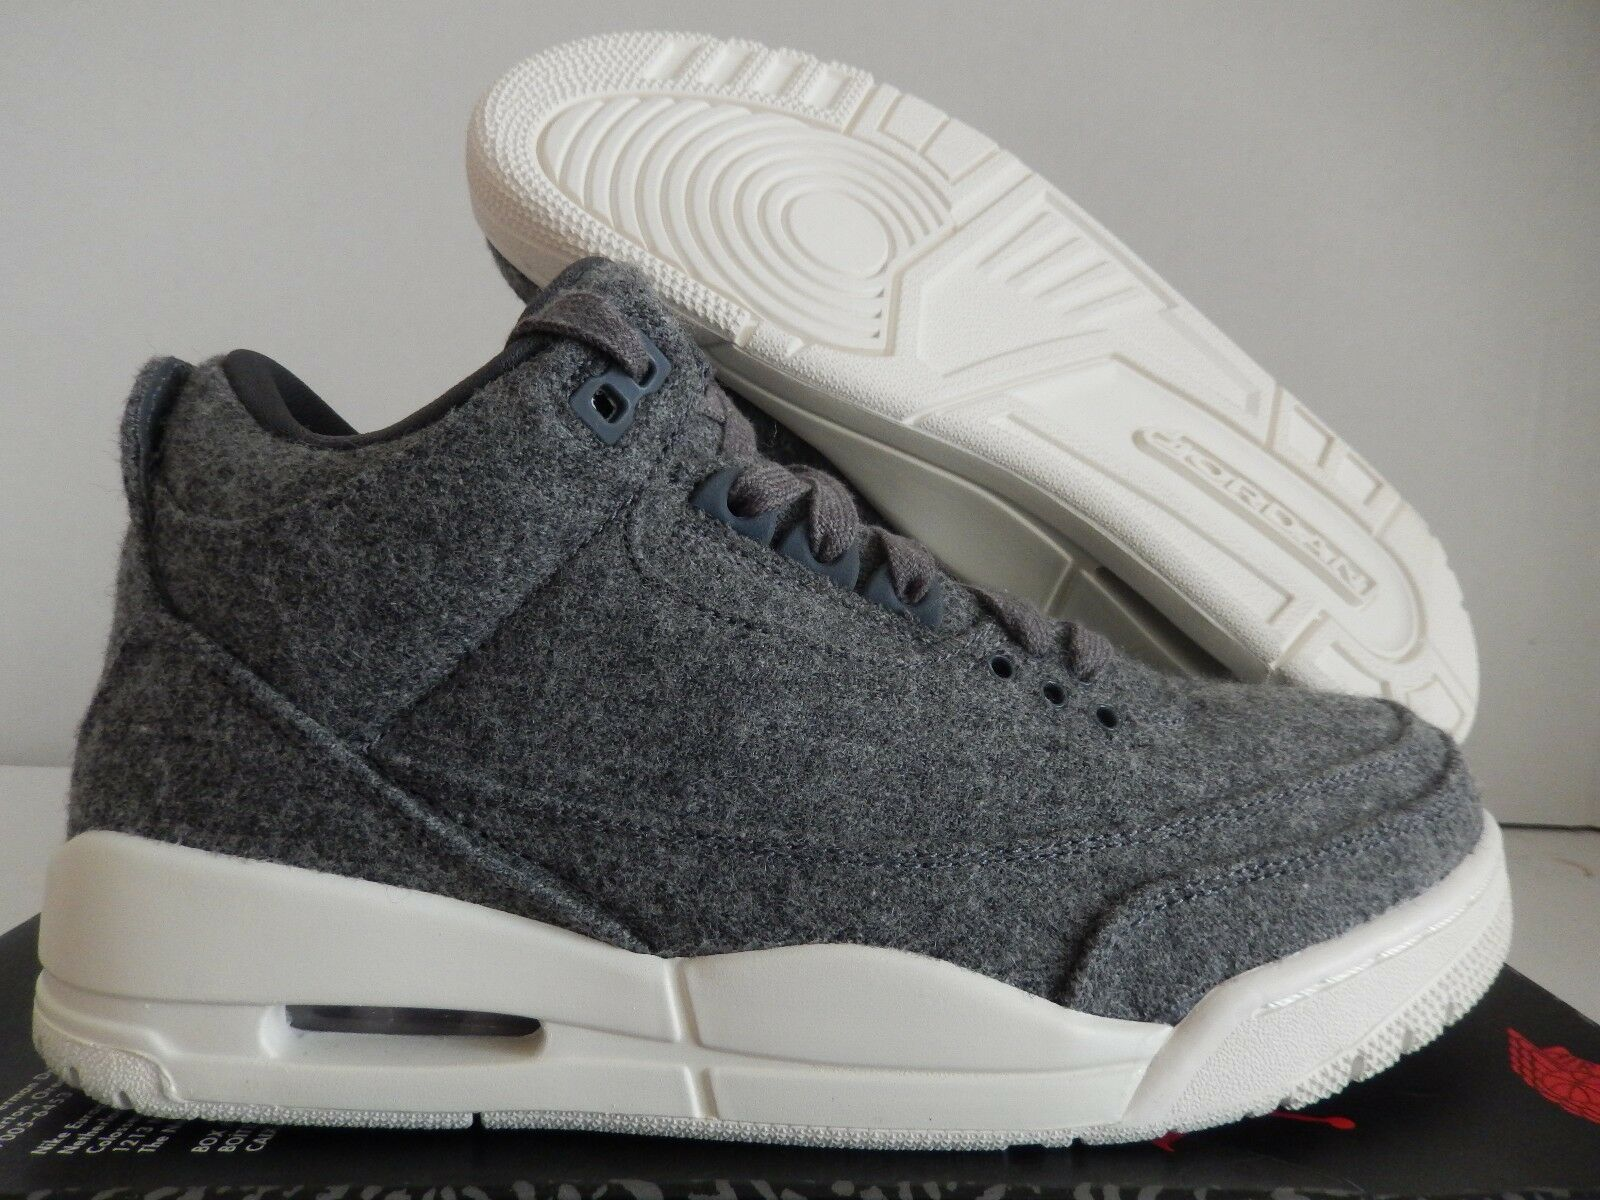 NIKE AIR JORDAN 3 RETRO WOOL gris SZ 7.5